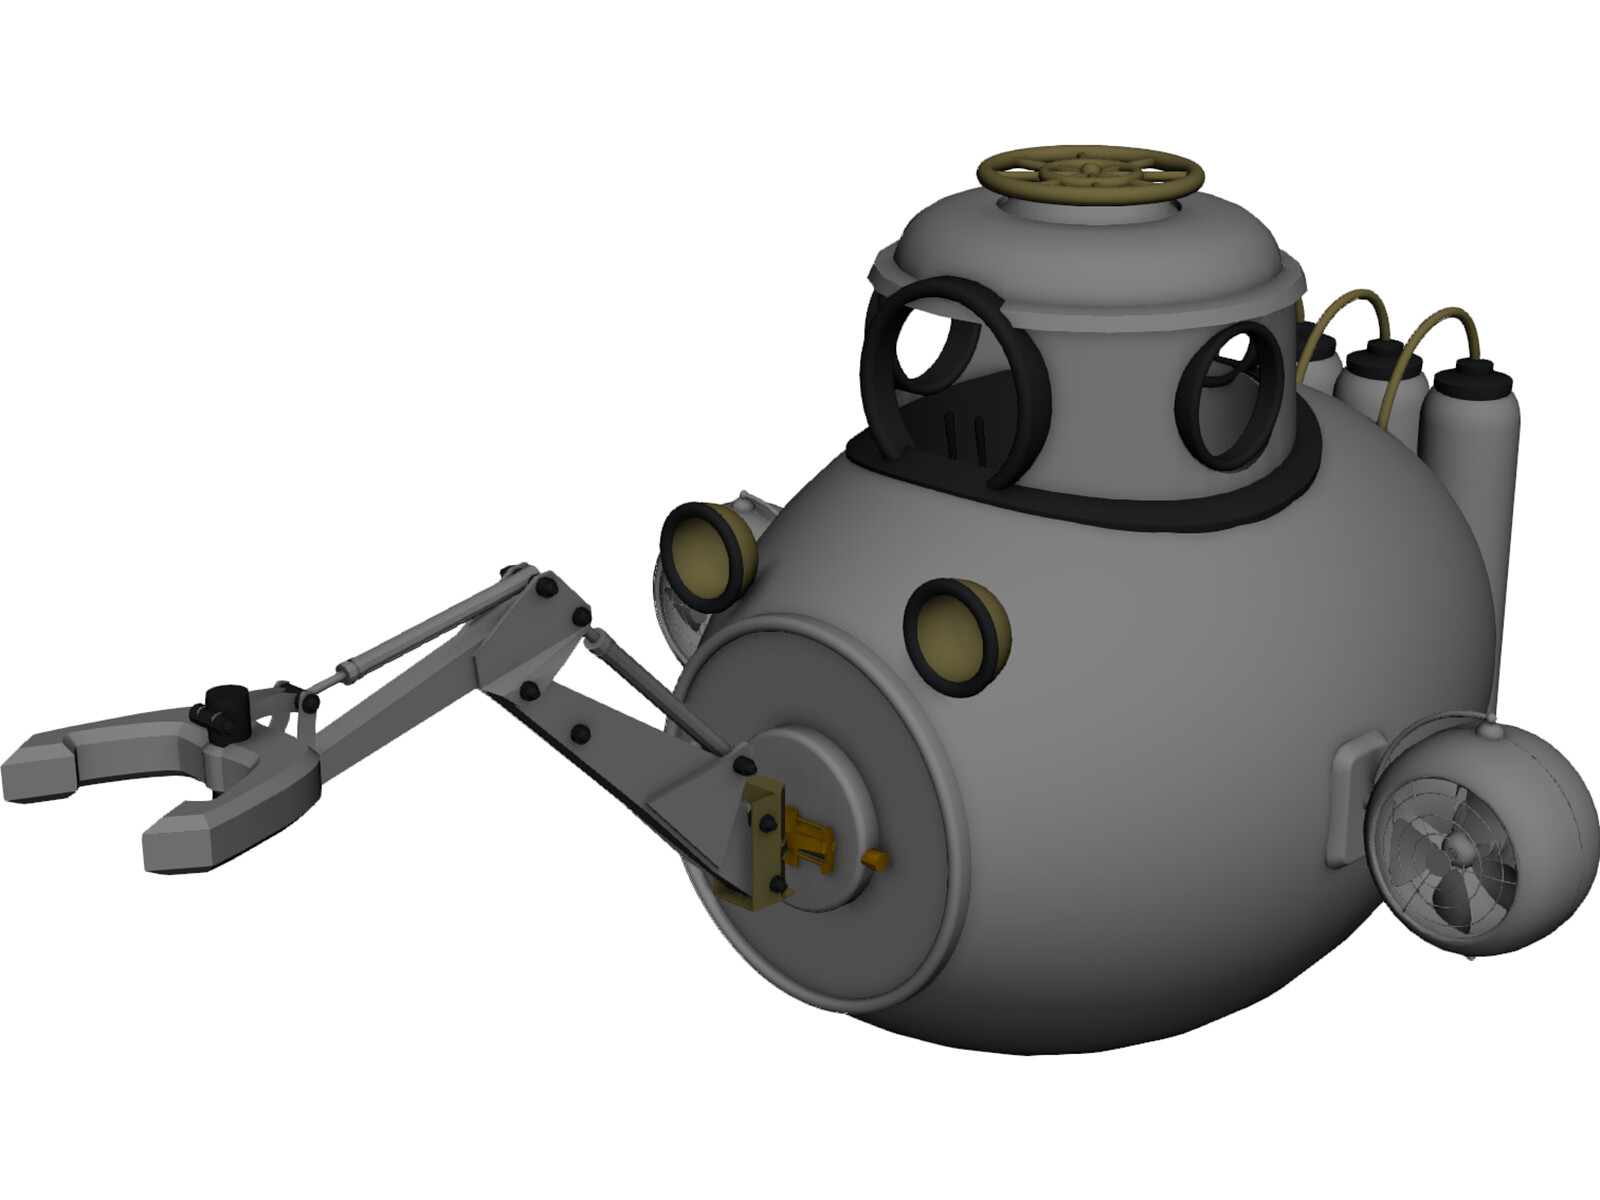 Submarine Sub Fantasy 3D Model